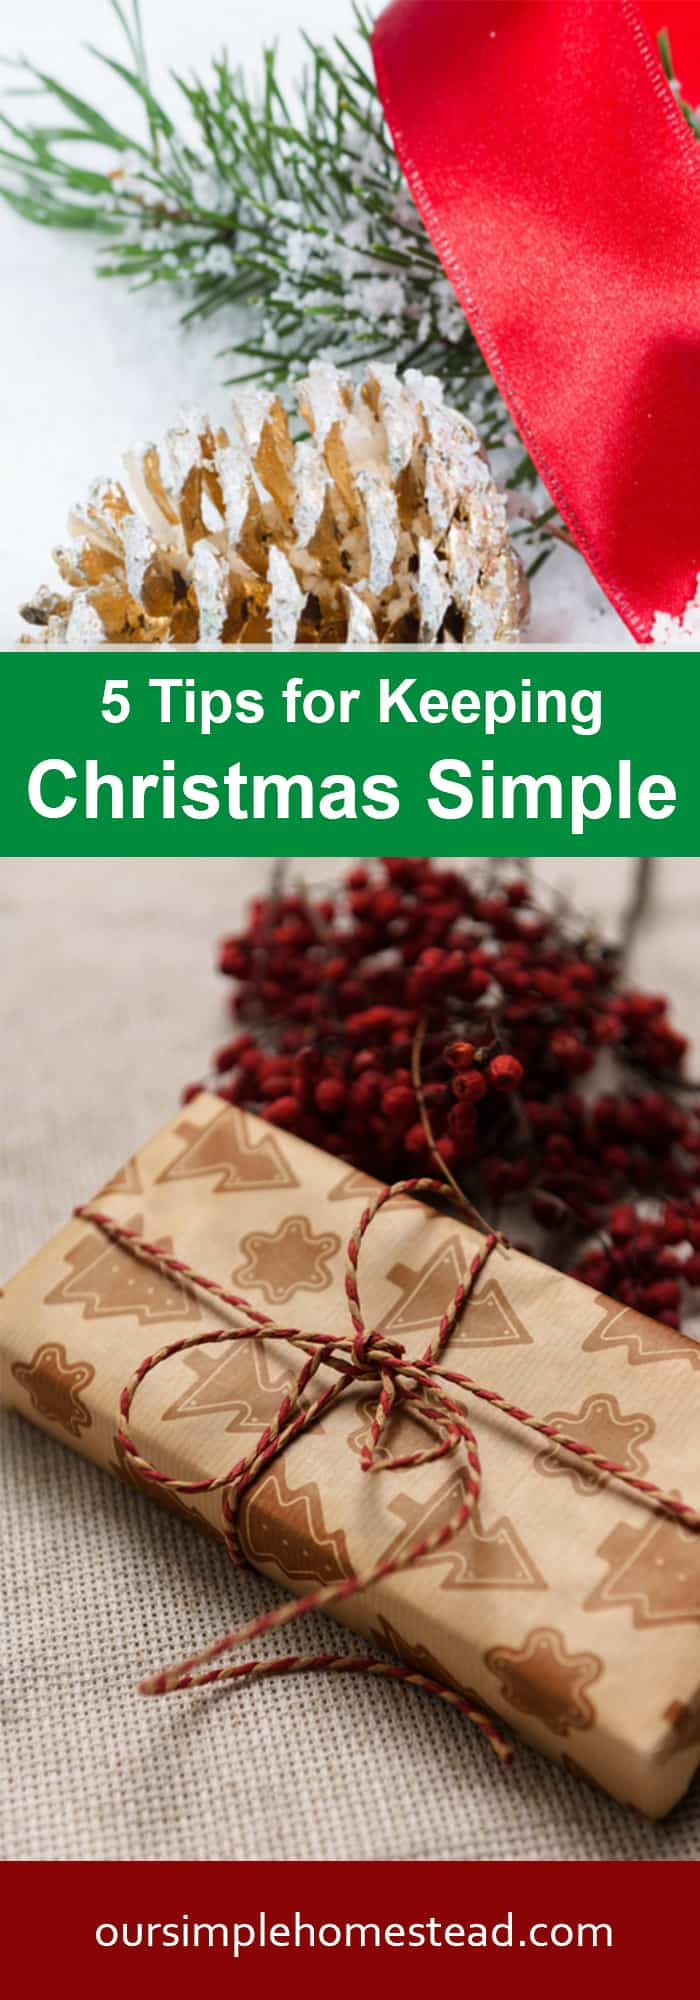 5 Tips for Keeping Christmas Simple